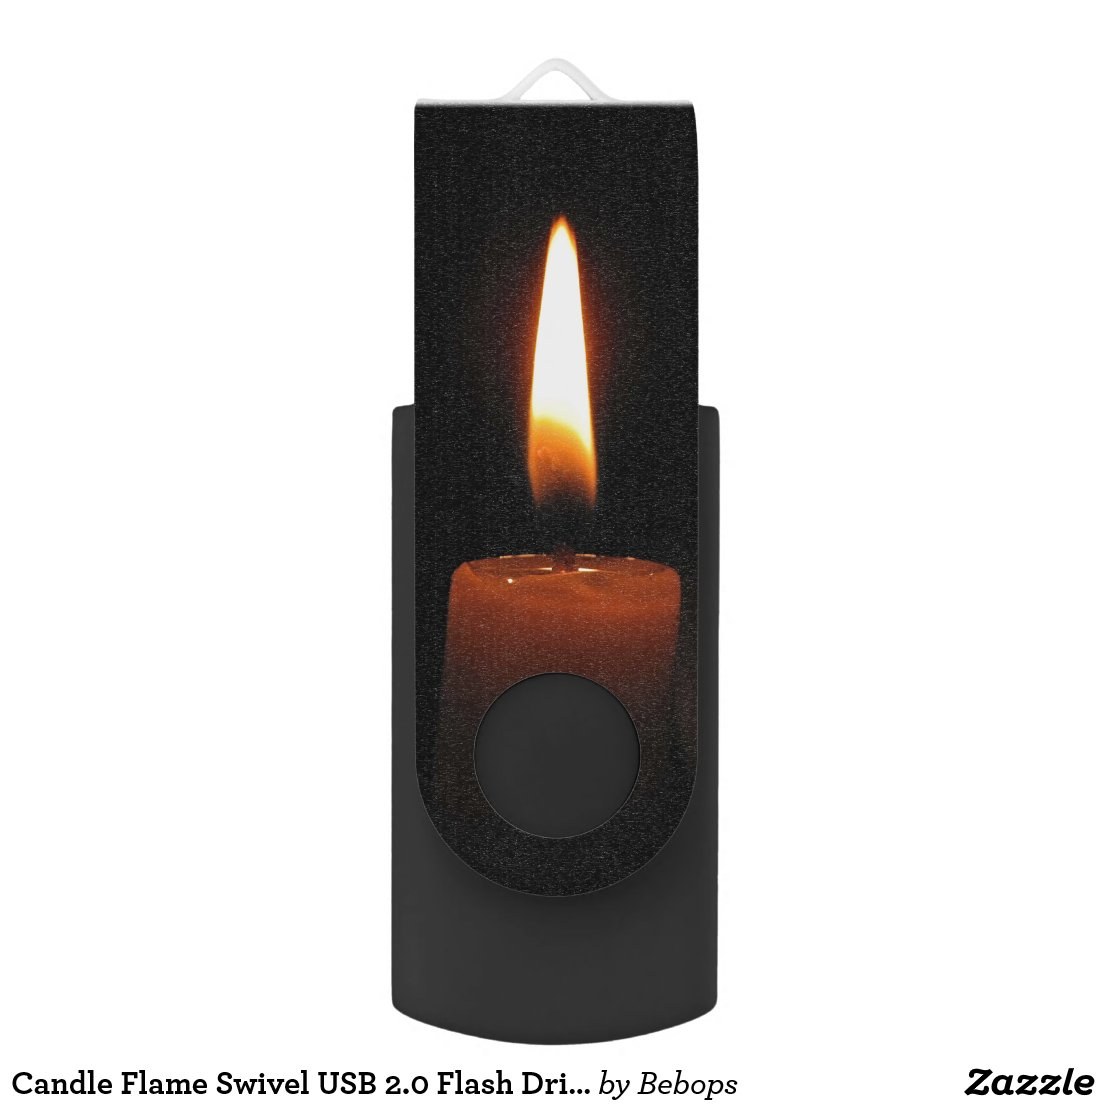 Candle Flame Swivel USB 2.0 Flash Drive